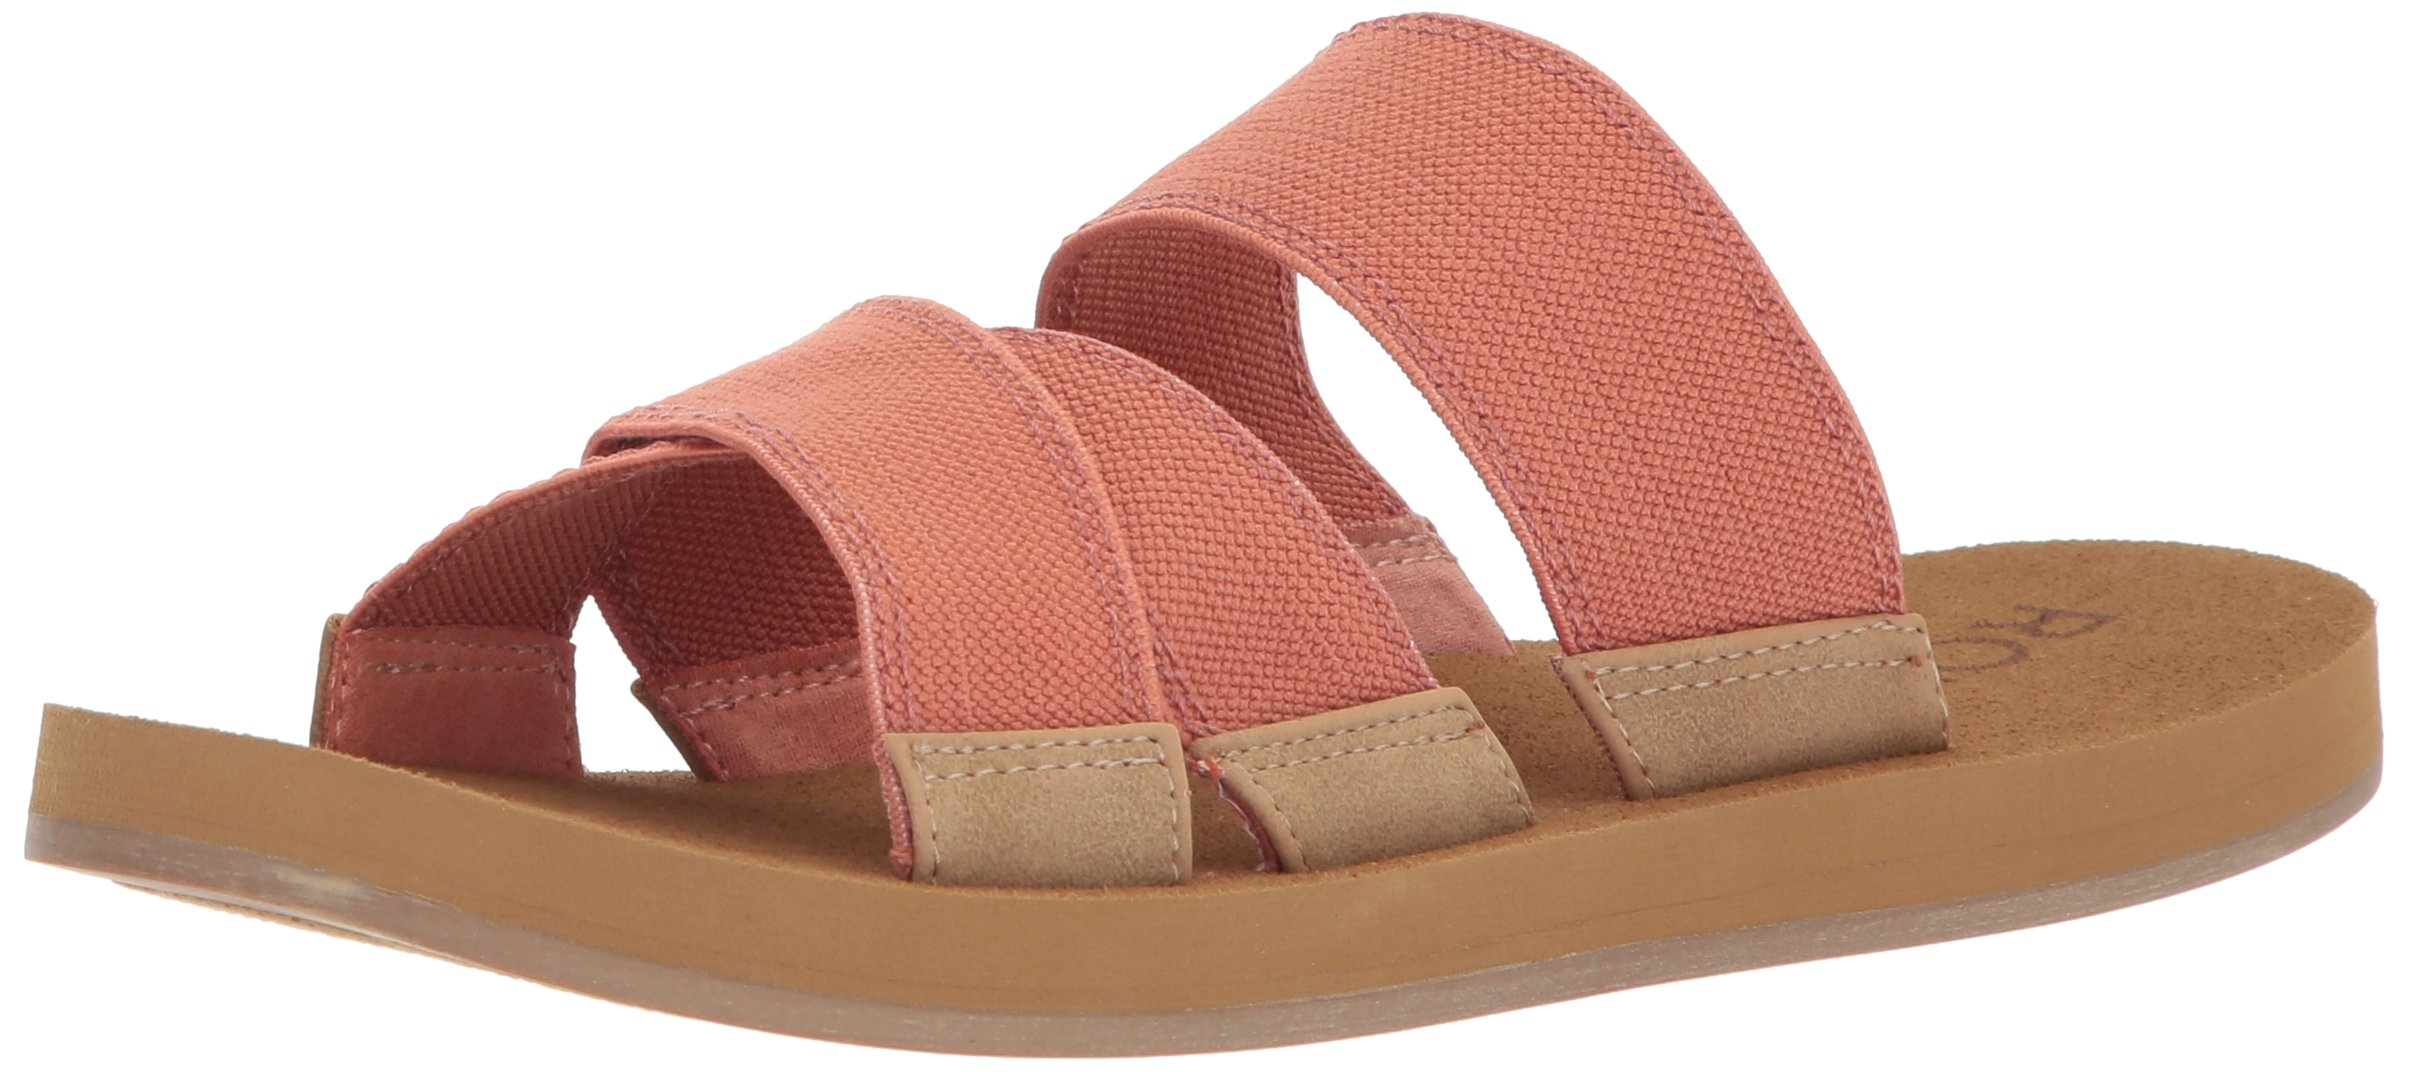 Roxy Women's Shoreside Sport Sandal, Rose, 7 M US